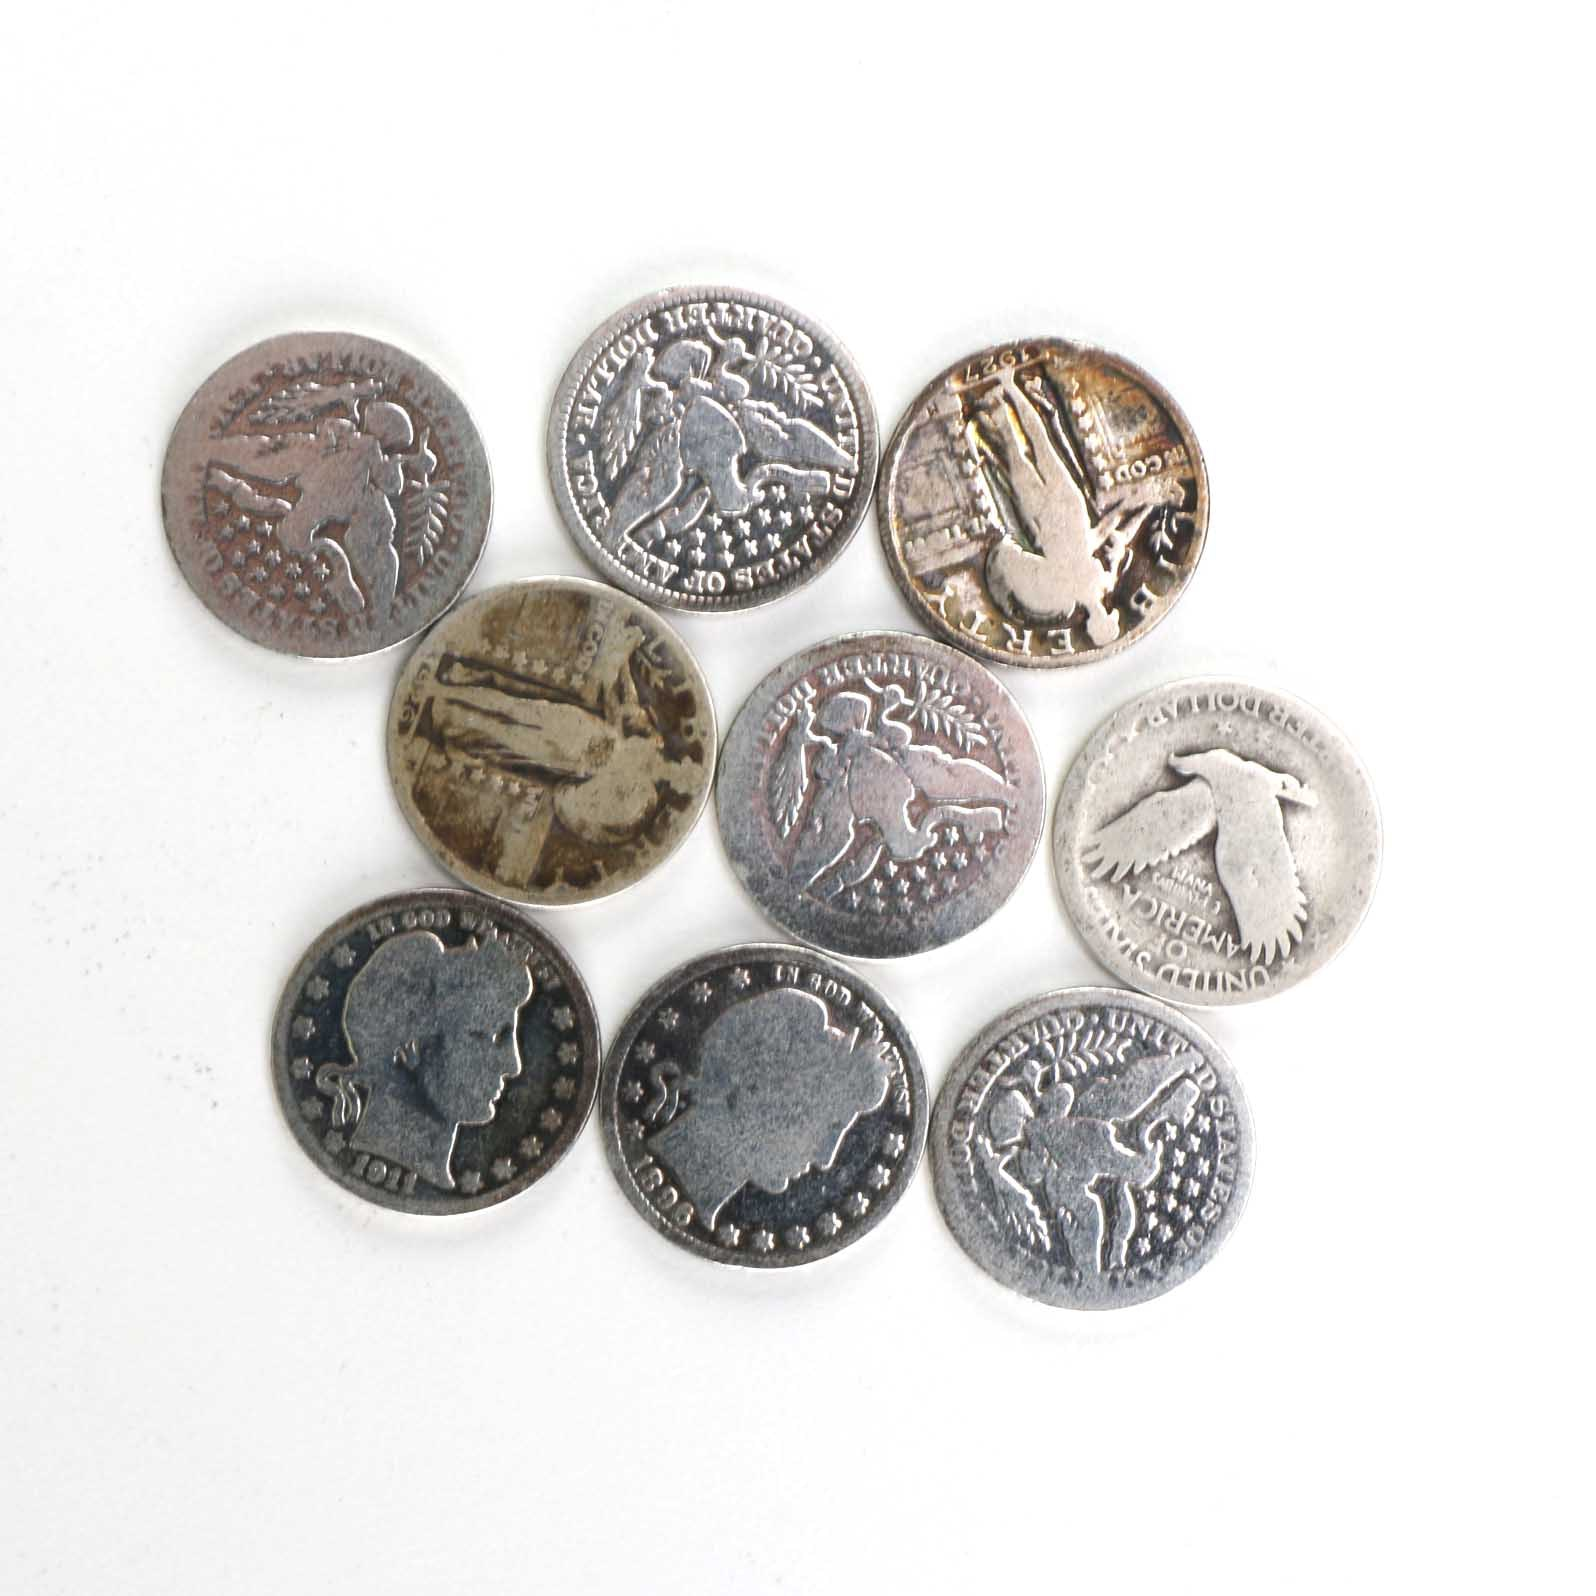 Assortment of Silver Barber and Standing Liberty Quarters